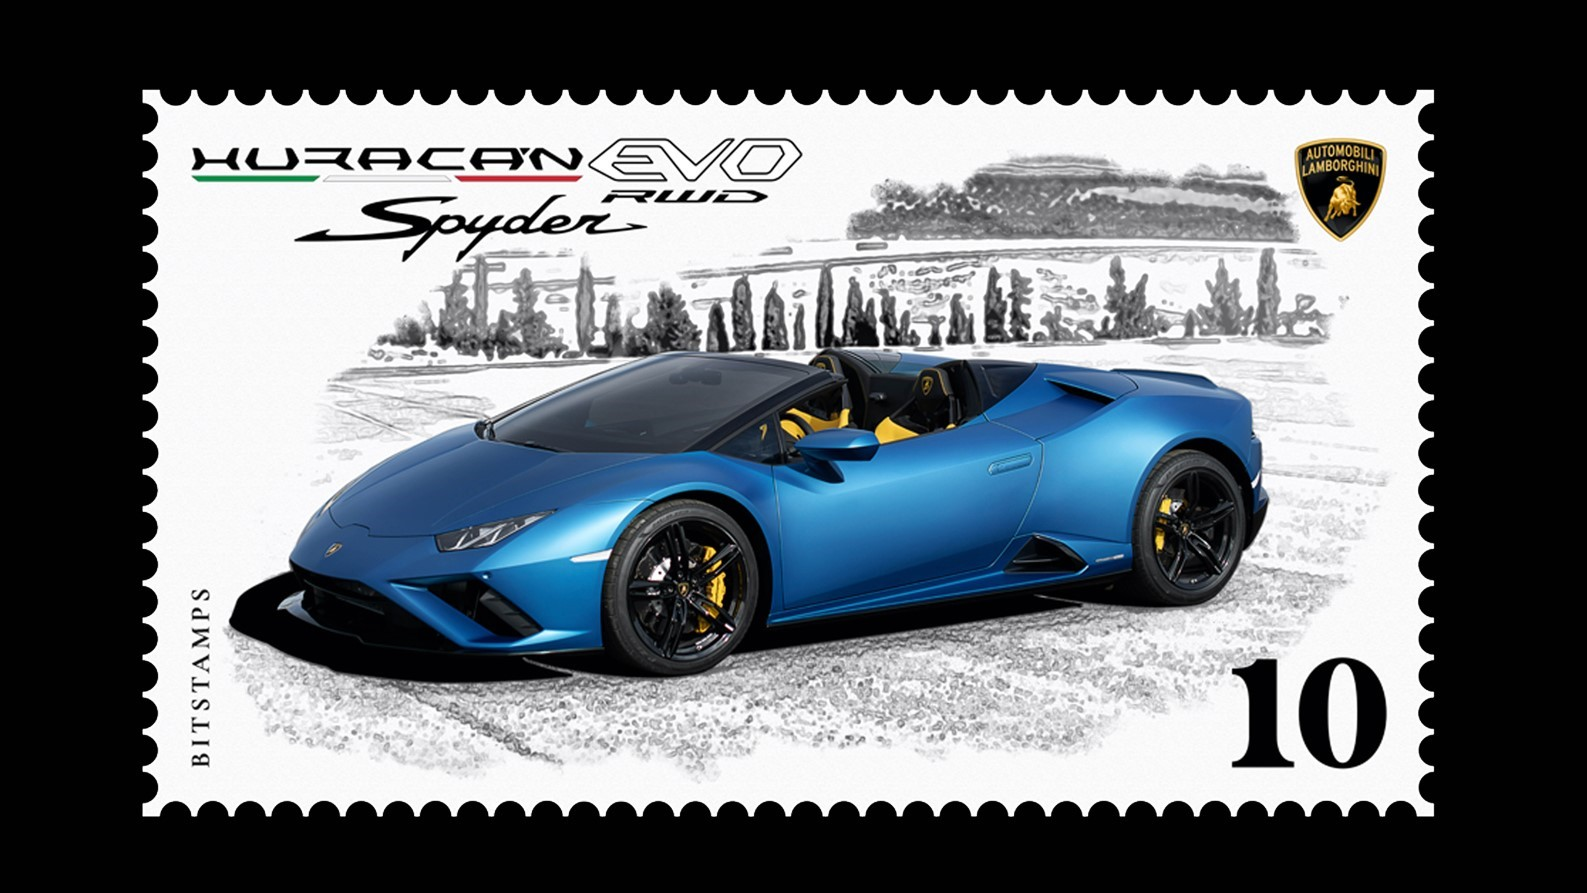 Automobili Lamborghini launches its first collector's digital stamp in collaboration with Bitstamps, dedicated to the Huracán EVO RWD Spyder - Image 4